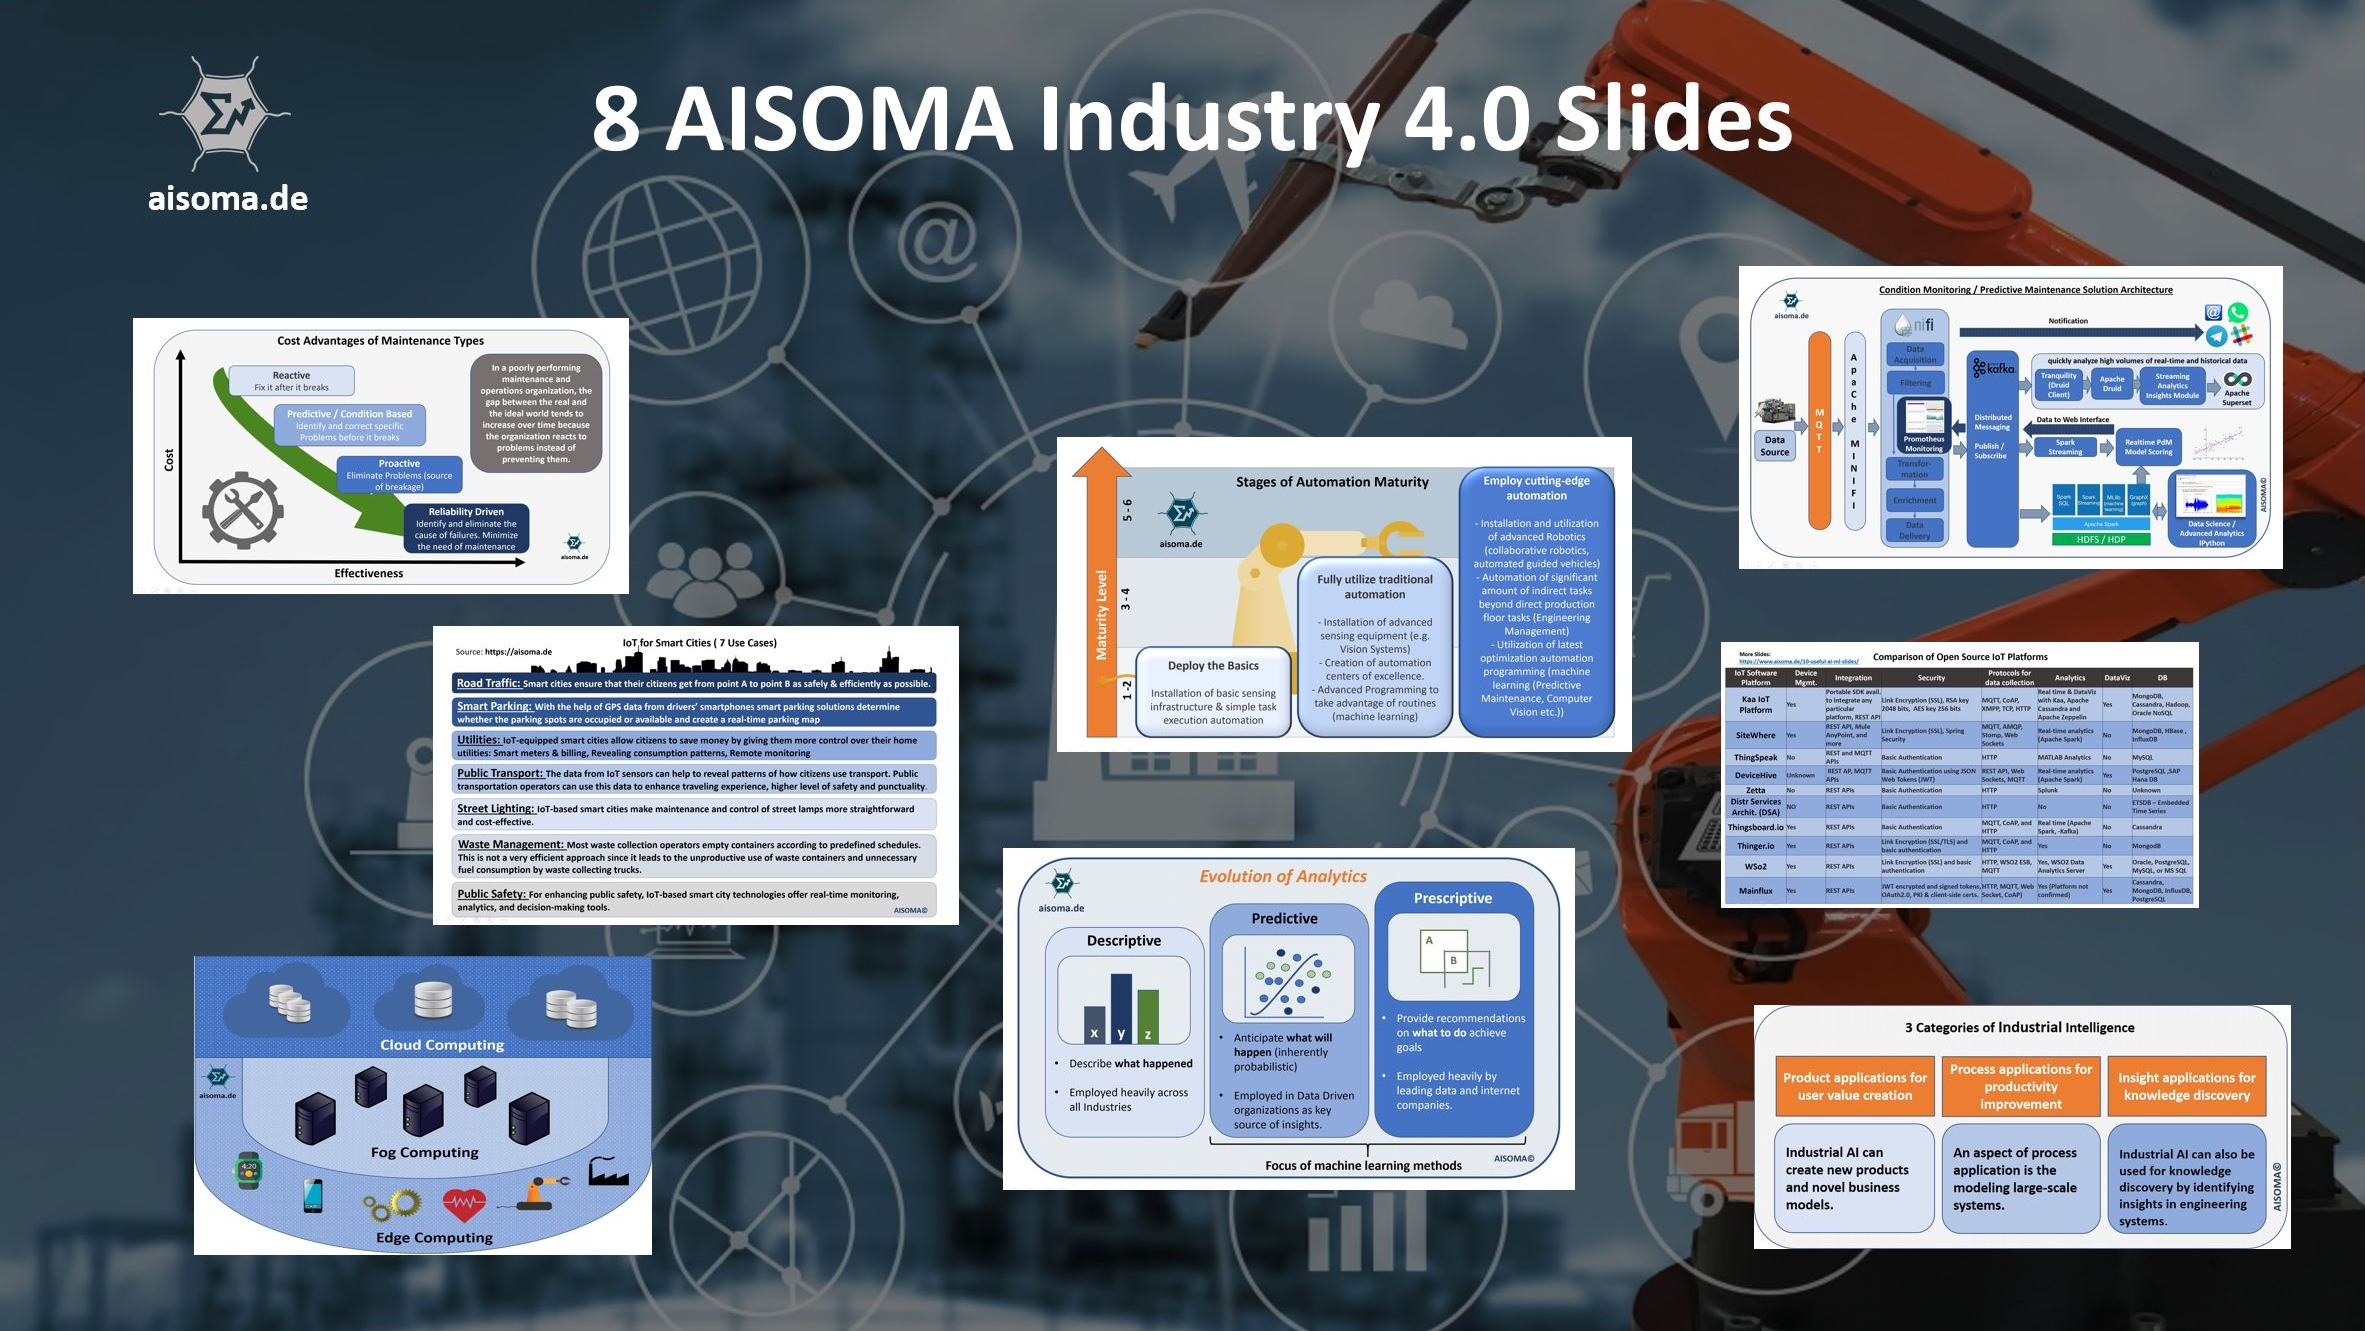 AISOMA - Industry 4.0 Slides